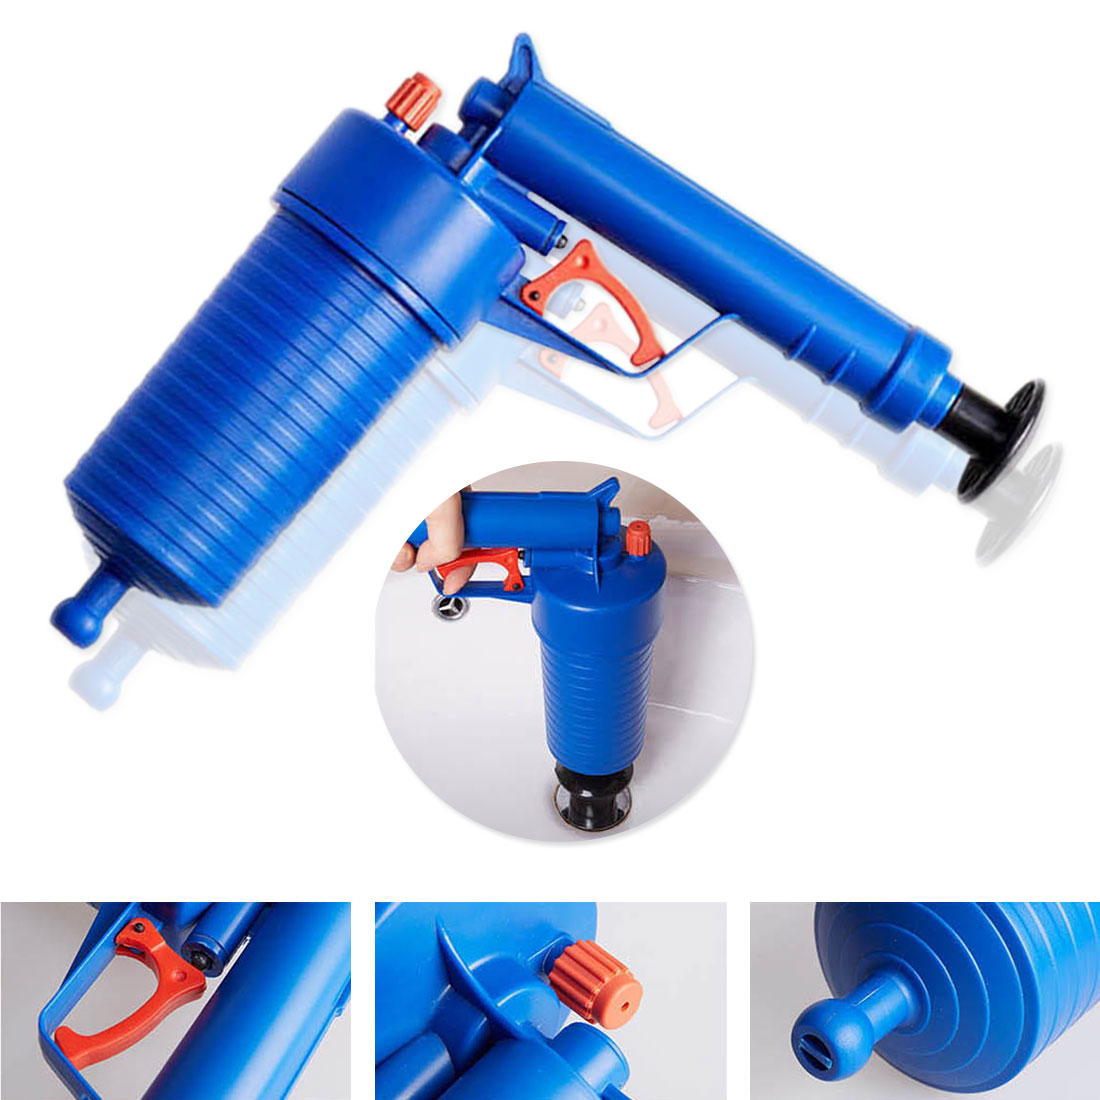 Pipe Clog Remover Air Drain Pump Toilets Bathroom Kitchen Cleaner Kit with 4 adapters pipe suction cup toilet plungerPipe Clog Remover Air Drain Pump Toilets Bathroom Kitchen Cleaner Kit with 4 adapters pipe suction cup toilet plunger